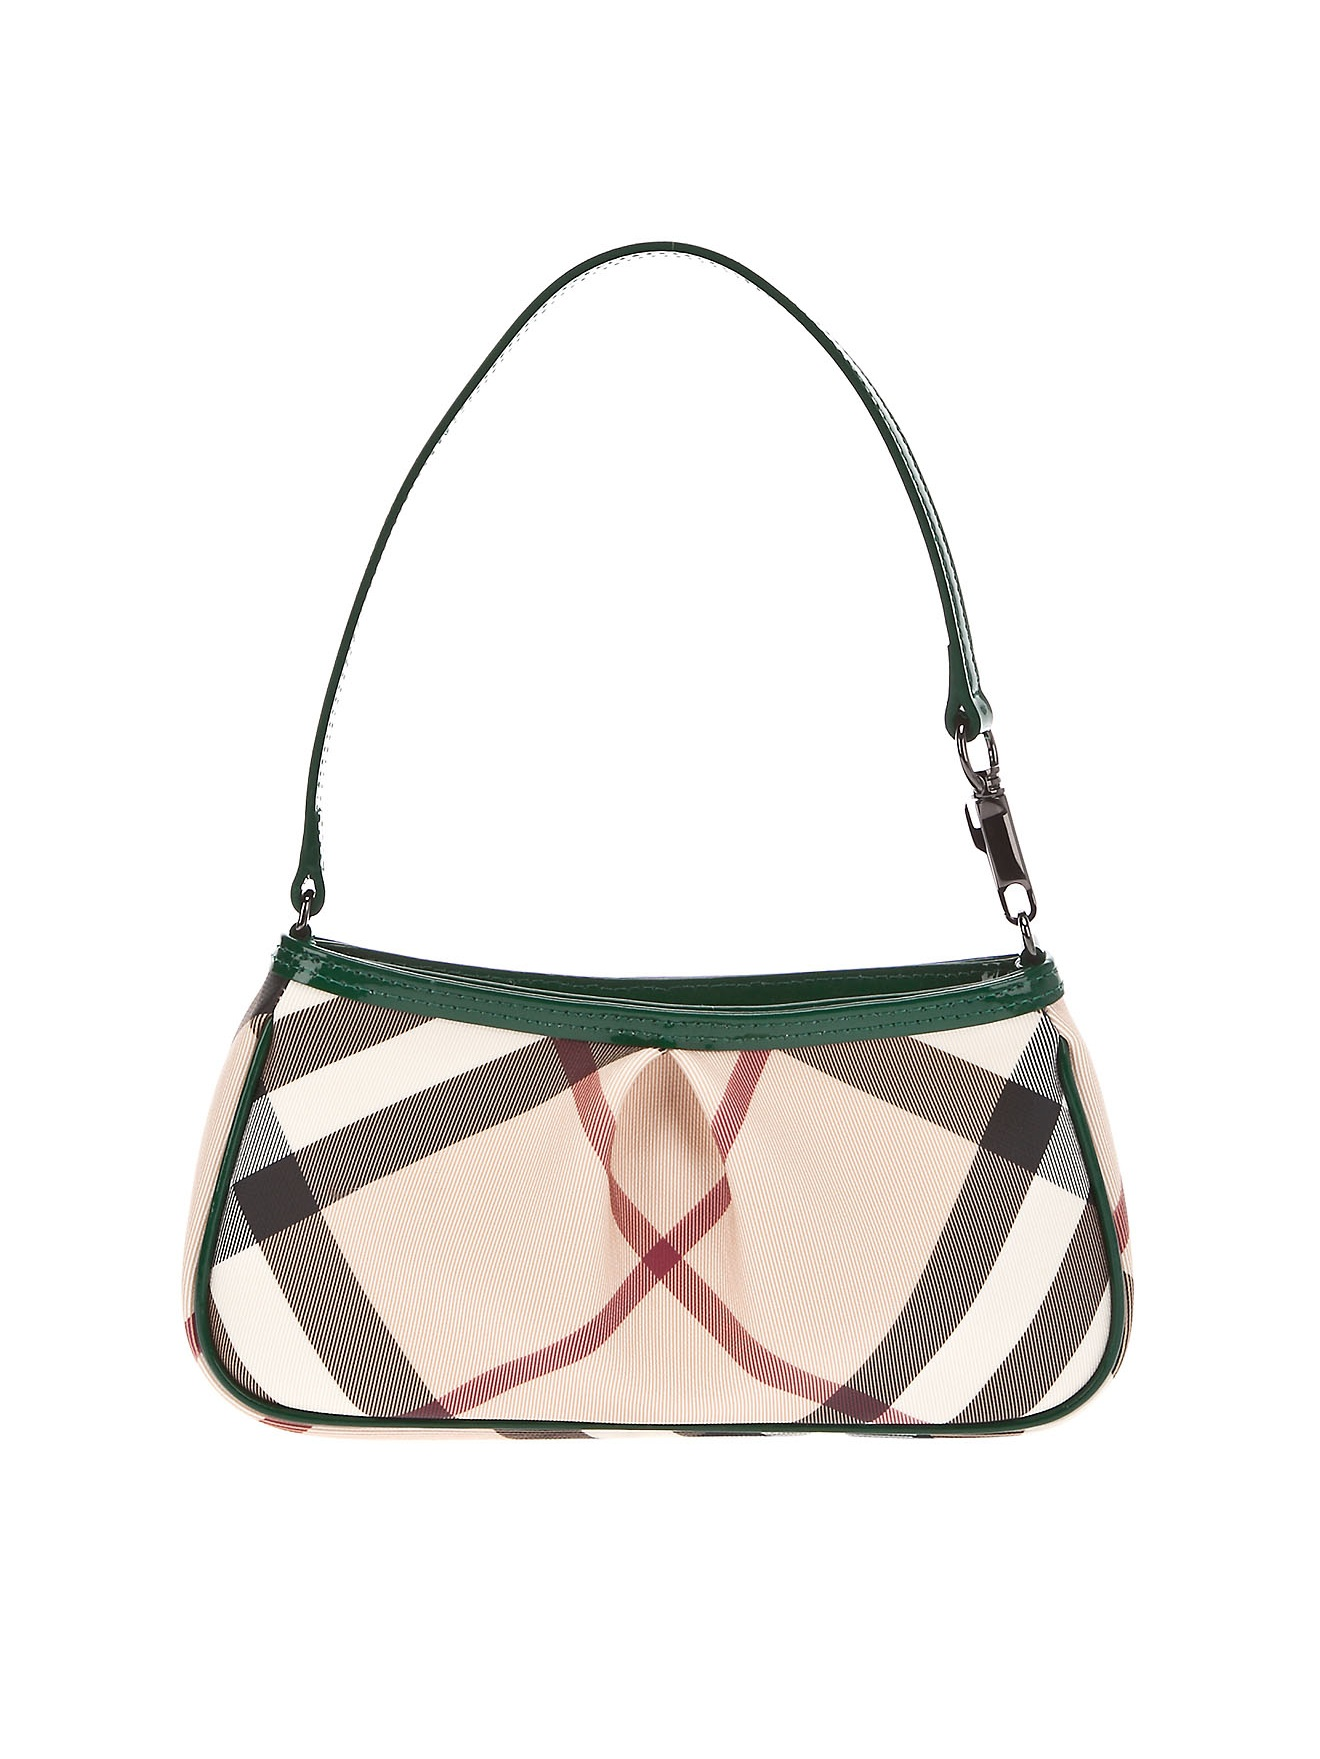 Burberry Nova Check Sling Bag in Natural - Lyst 54db1f3d67985